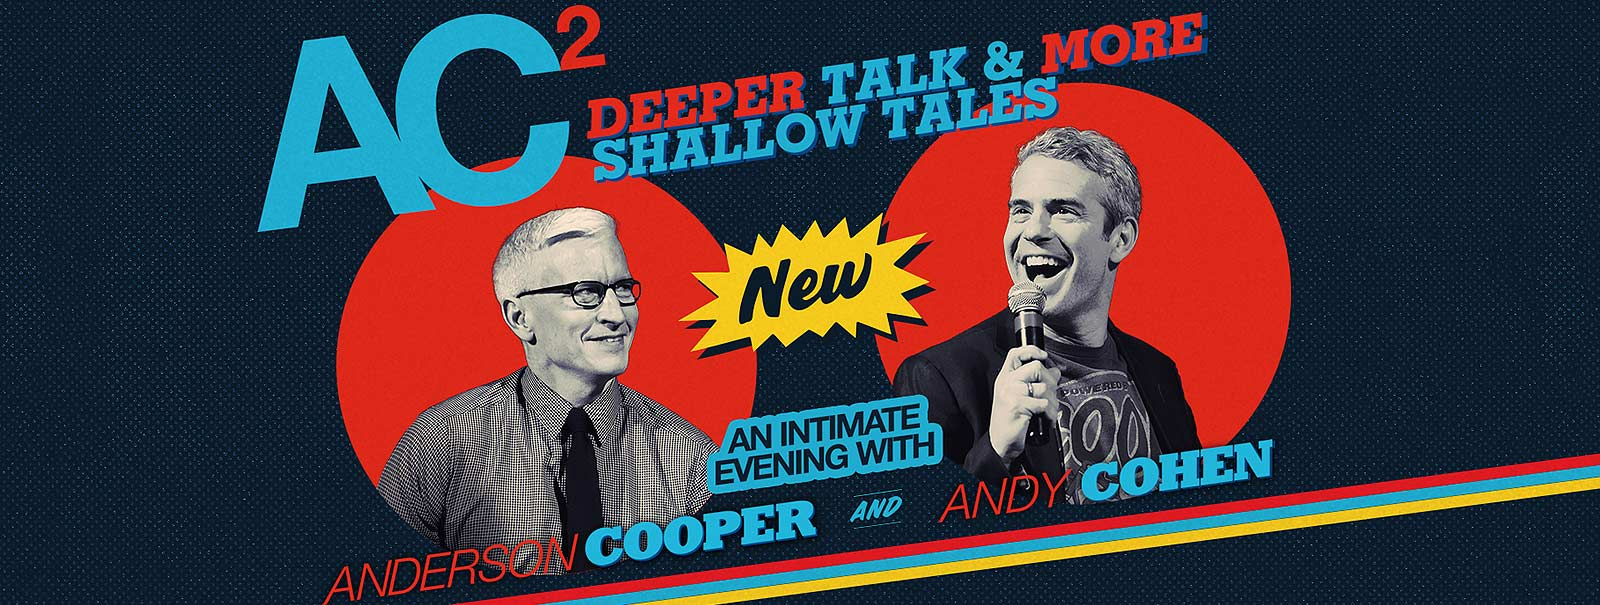 More Info - AC2: An Intimate Evening with Anderson Cooper & Andy Cohen